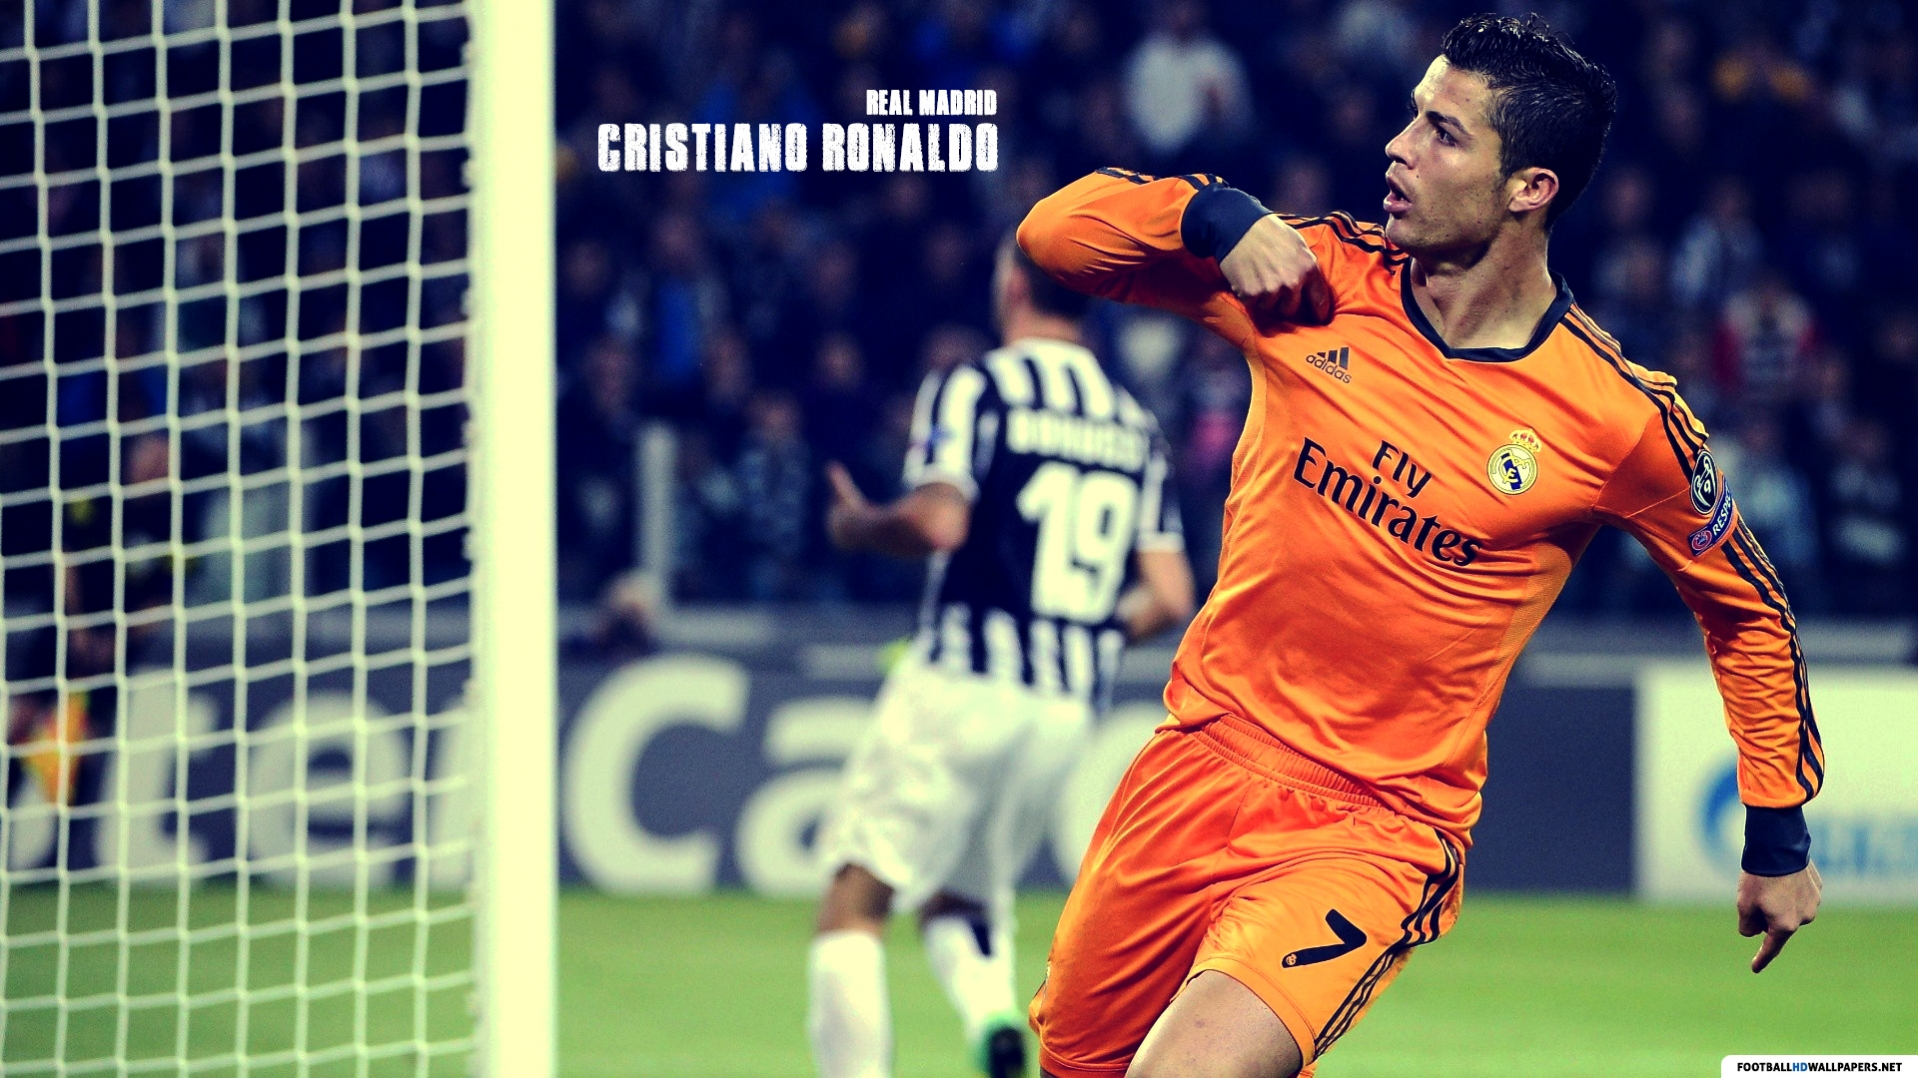 cristiano ronaldo goal real madrid hd football wallpapers 1918x1078